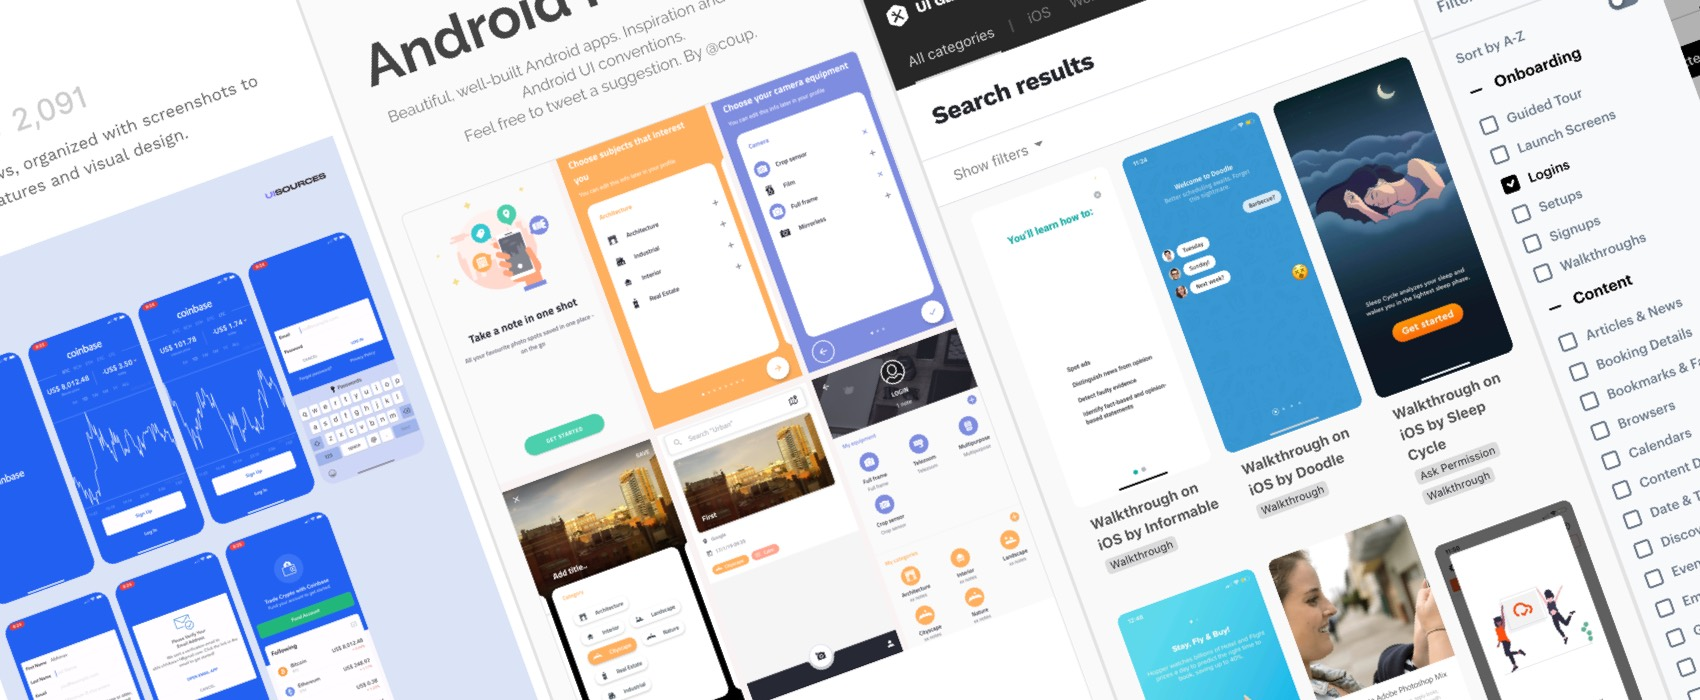 15+ Expert Resources For Mobile UI Inspiration: Patterns, Components and Flows